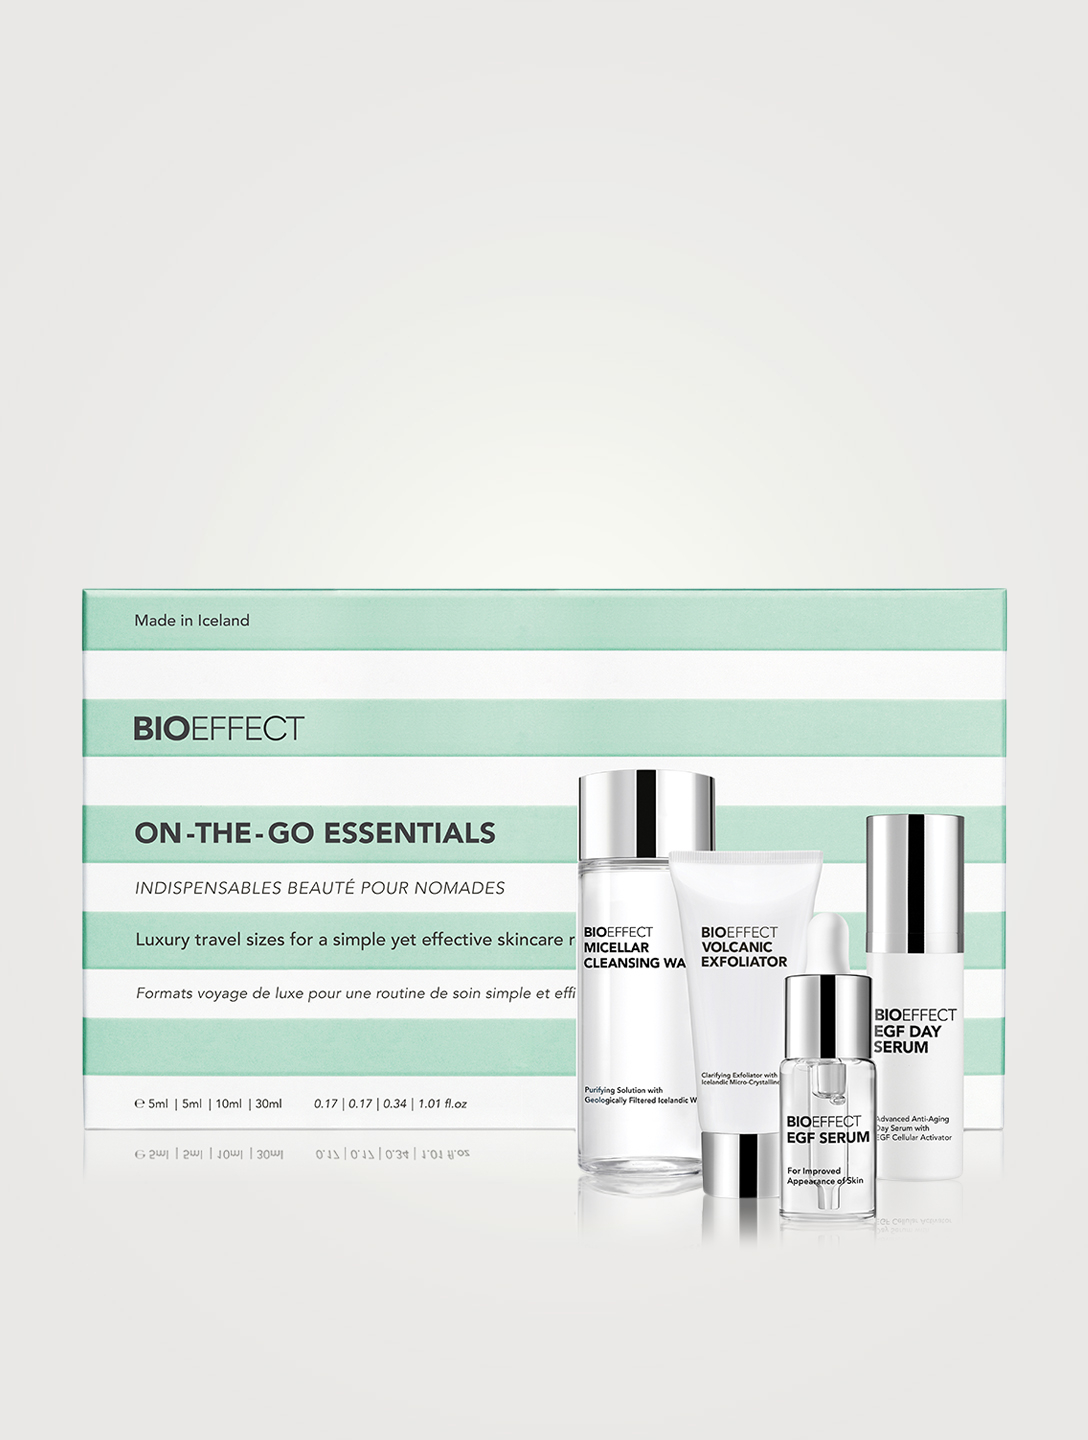 BIOEFFECT On-The-Go Essentials Beauty